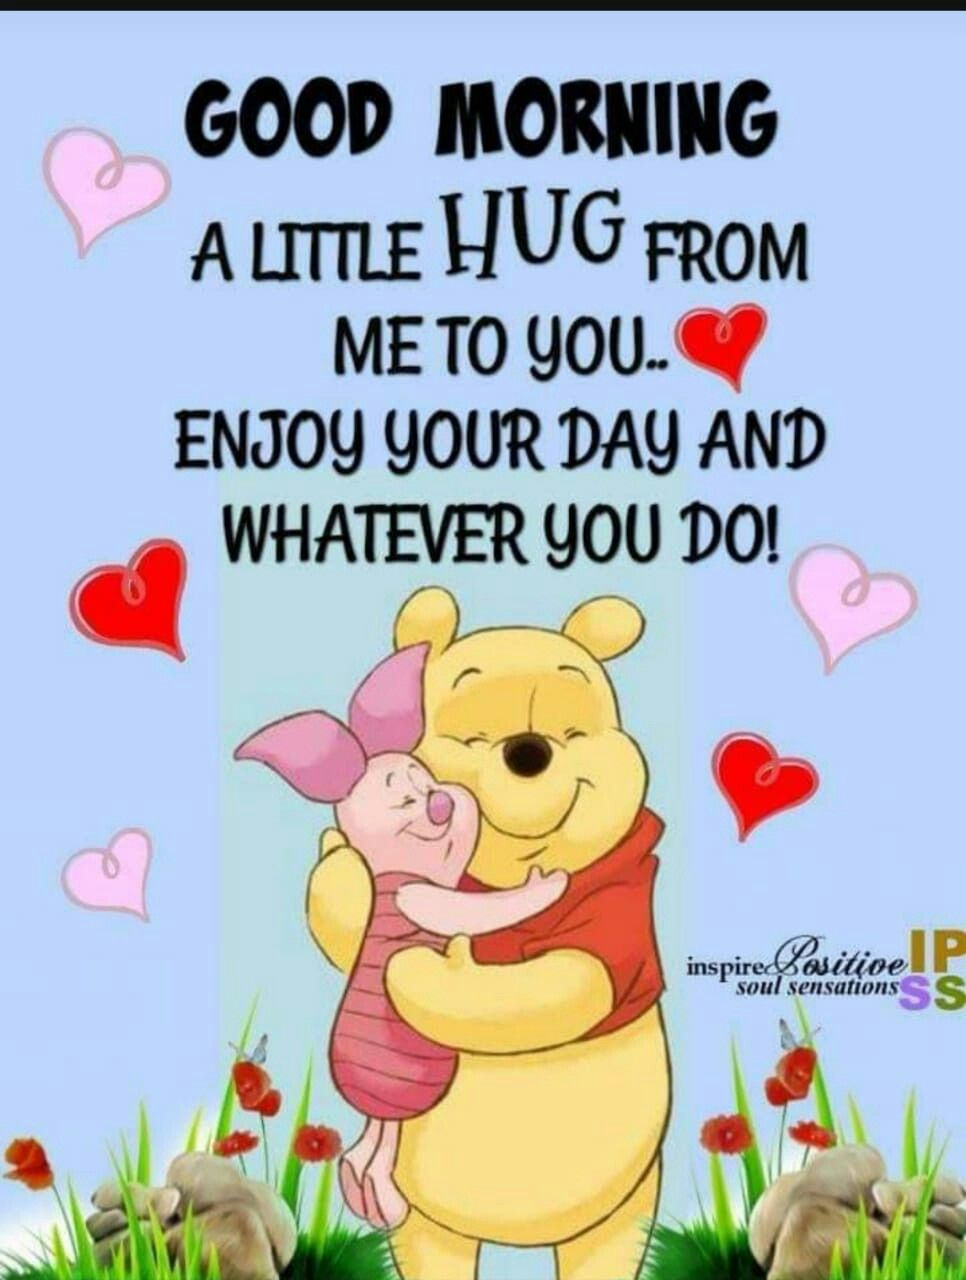 Pin by Anne on Good Morning...   Good morning disney, Good morning  greetings, Winnie the pooh quotes